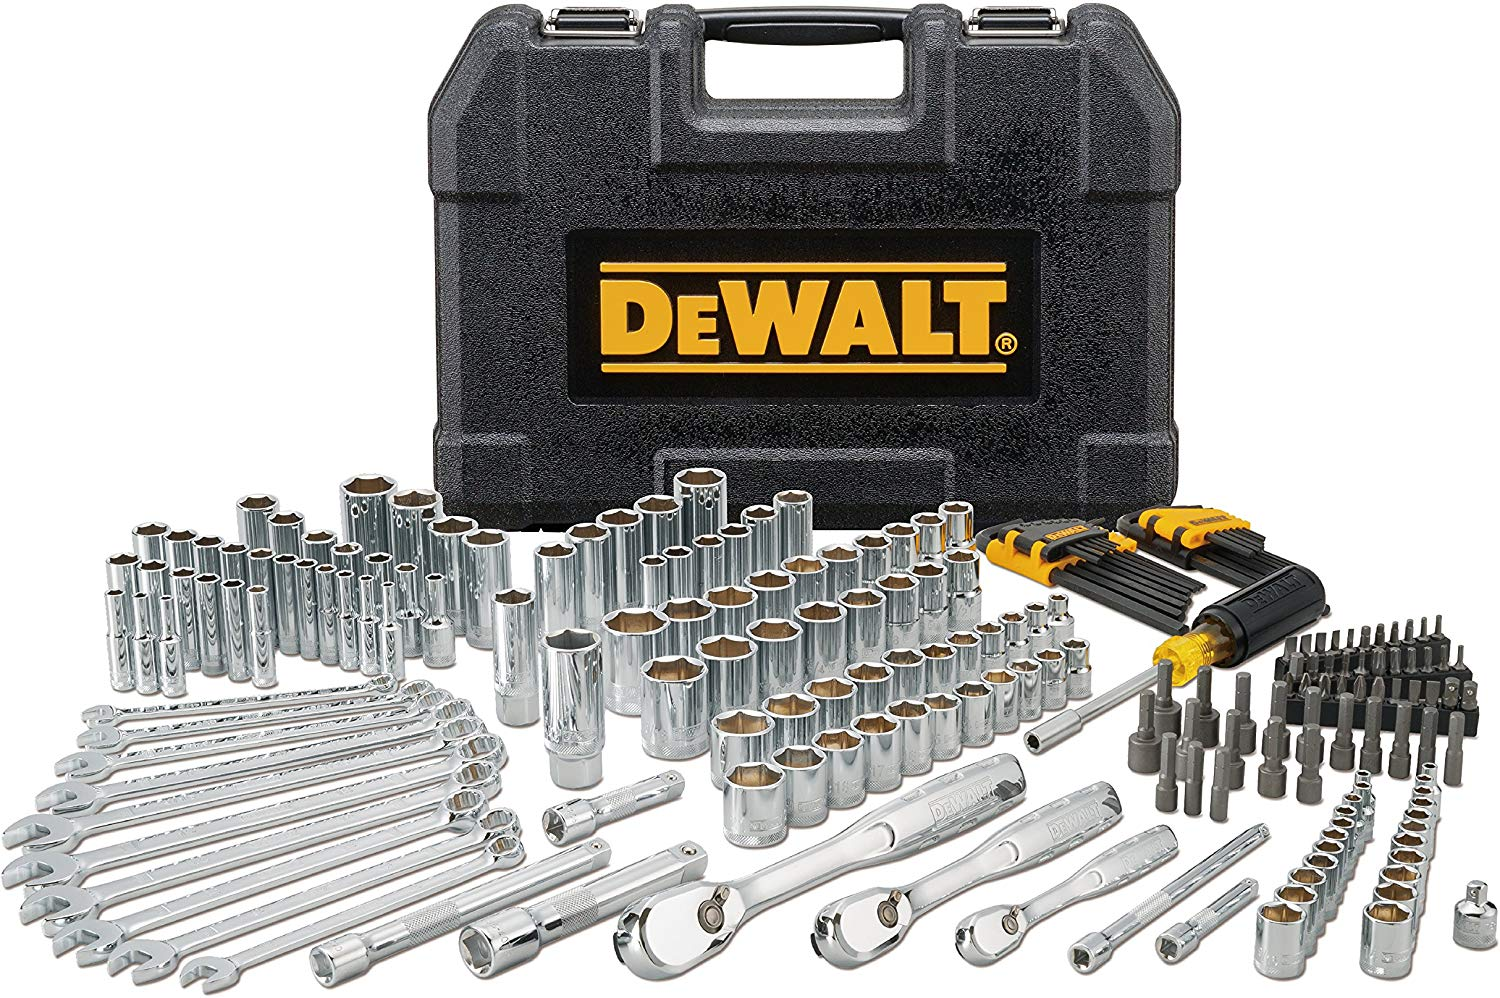 Dewalt DWMT81534 - Car Tool Kit